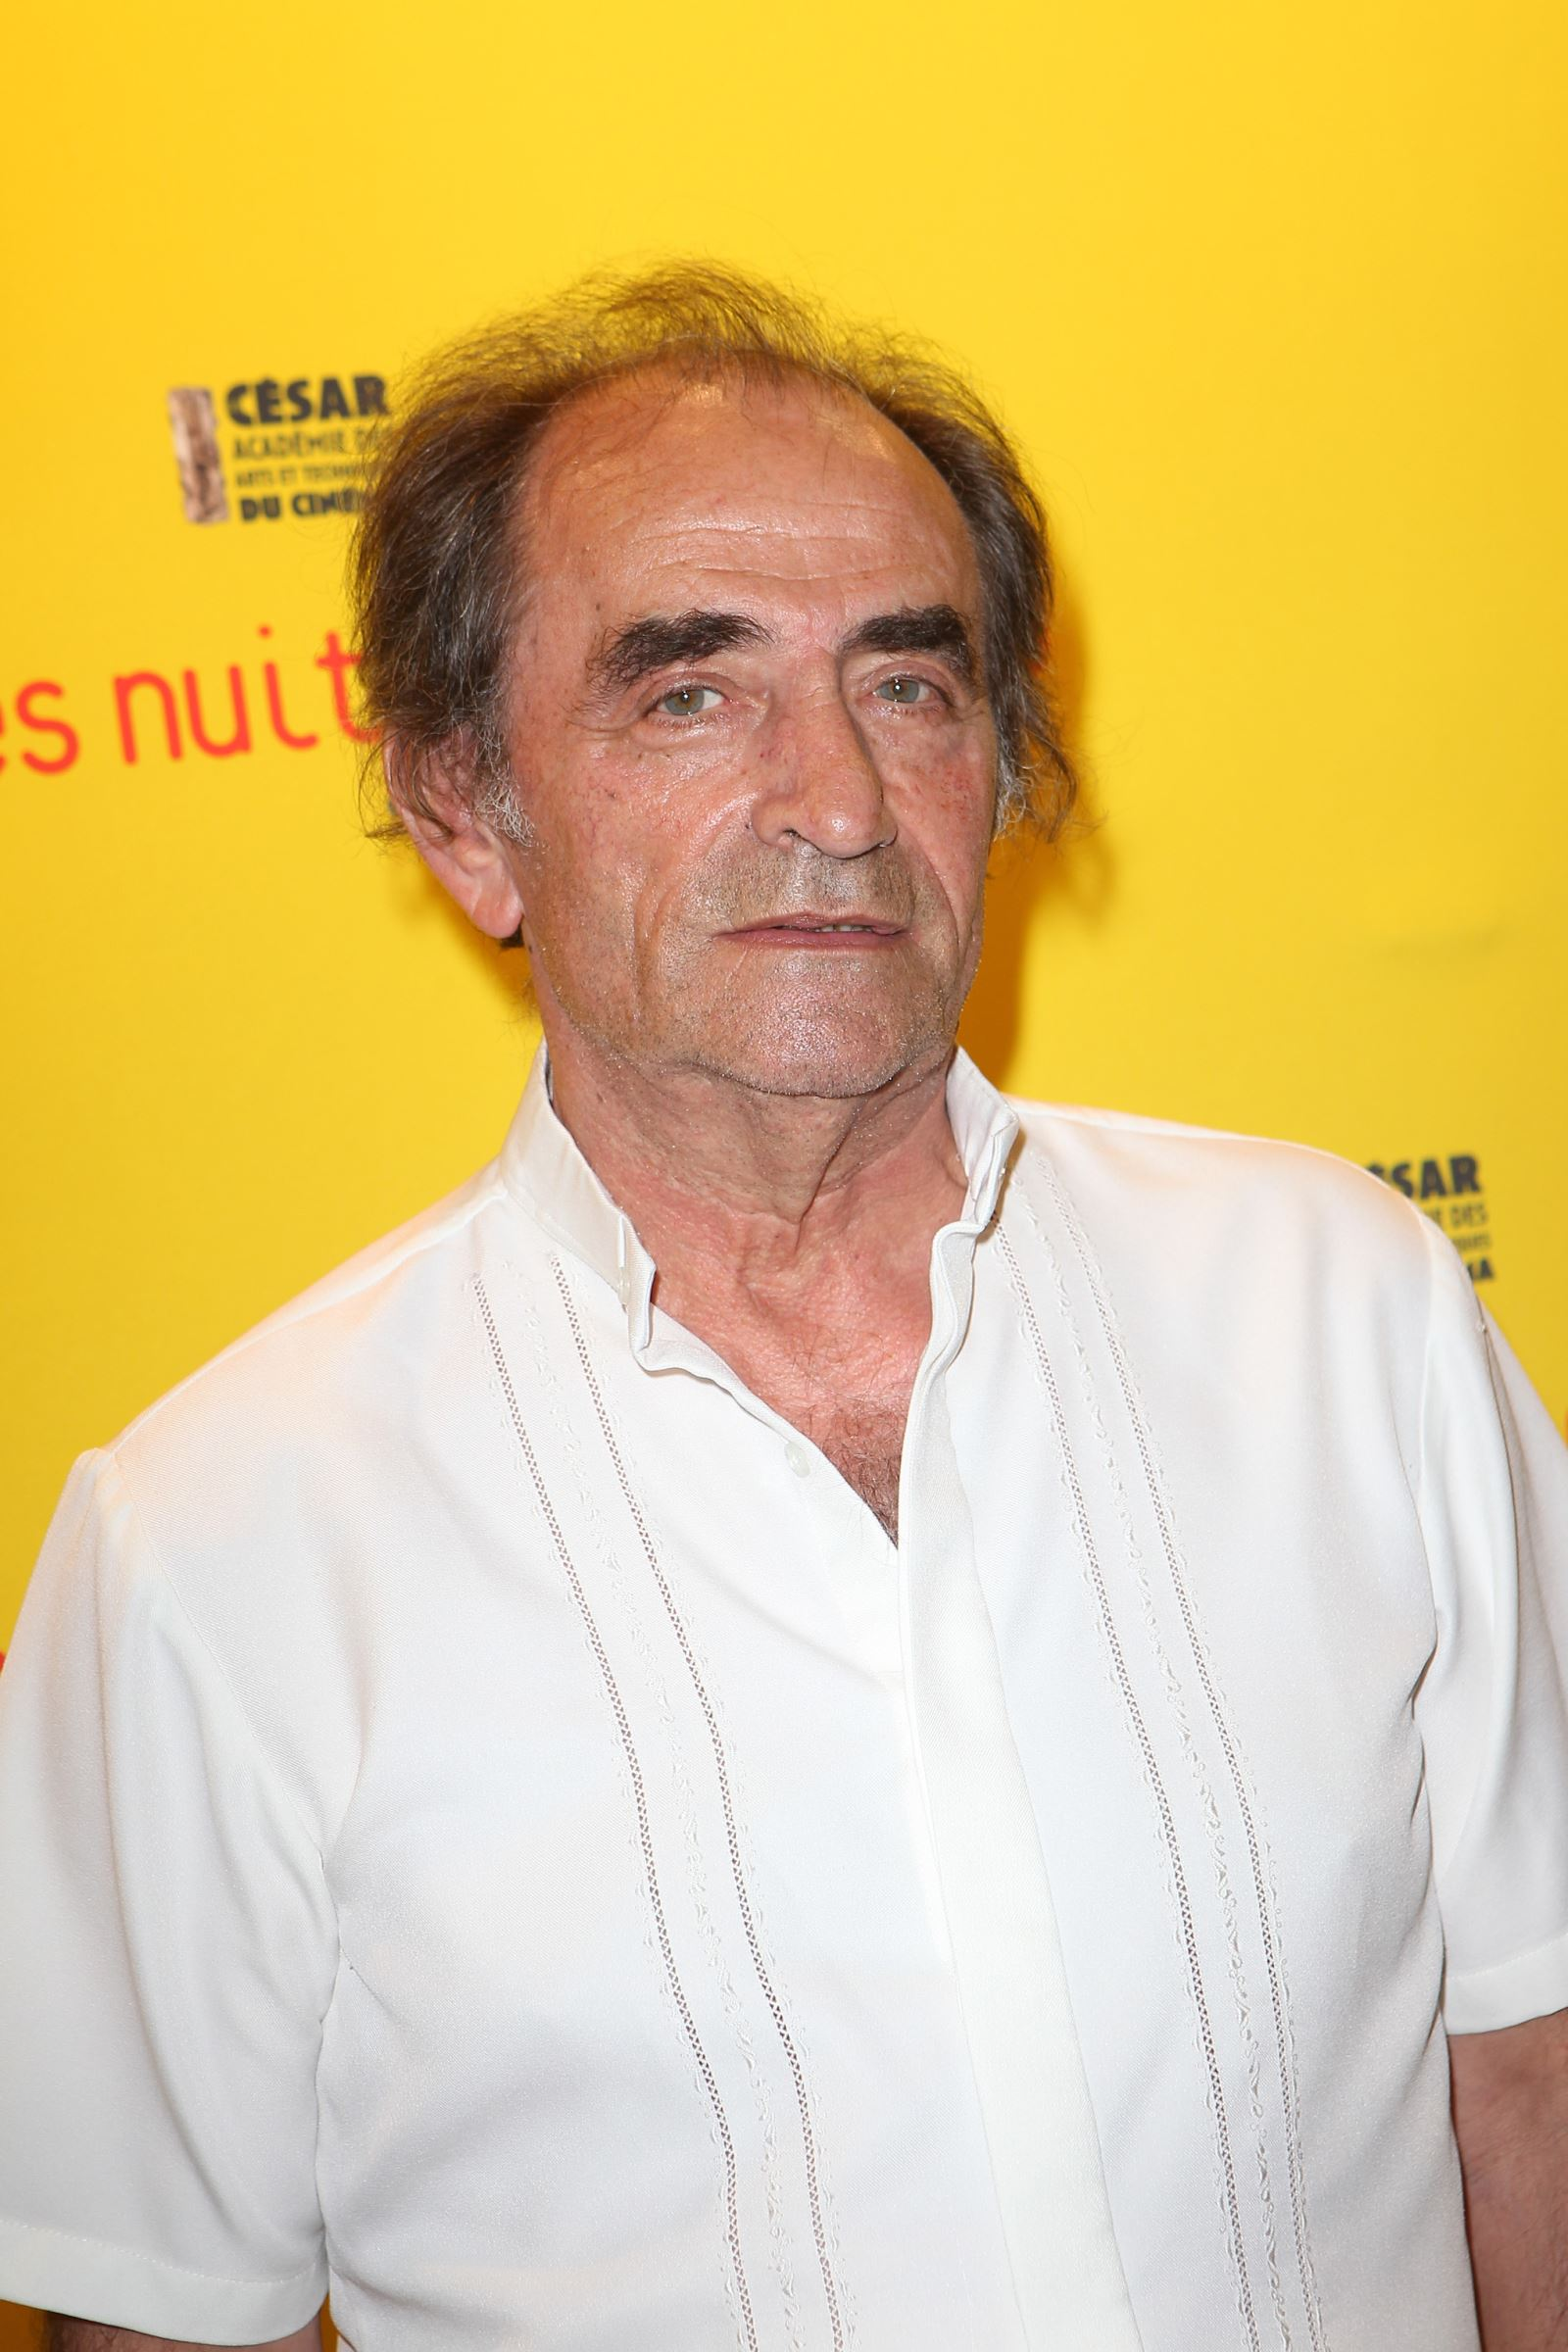 Richard Bohringer Cancer De Quoi : richard, bohringer, cancer, Richard, Bohringer, Cancer, Reviens, Loin'', Télé